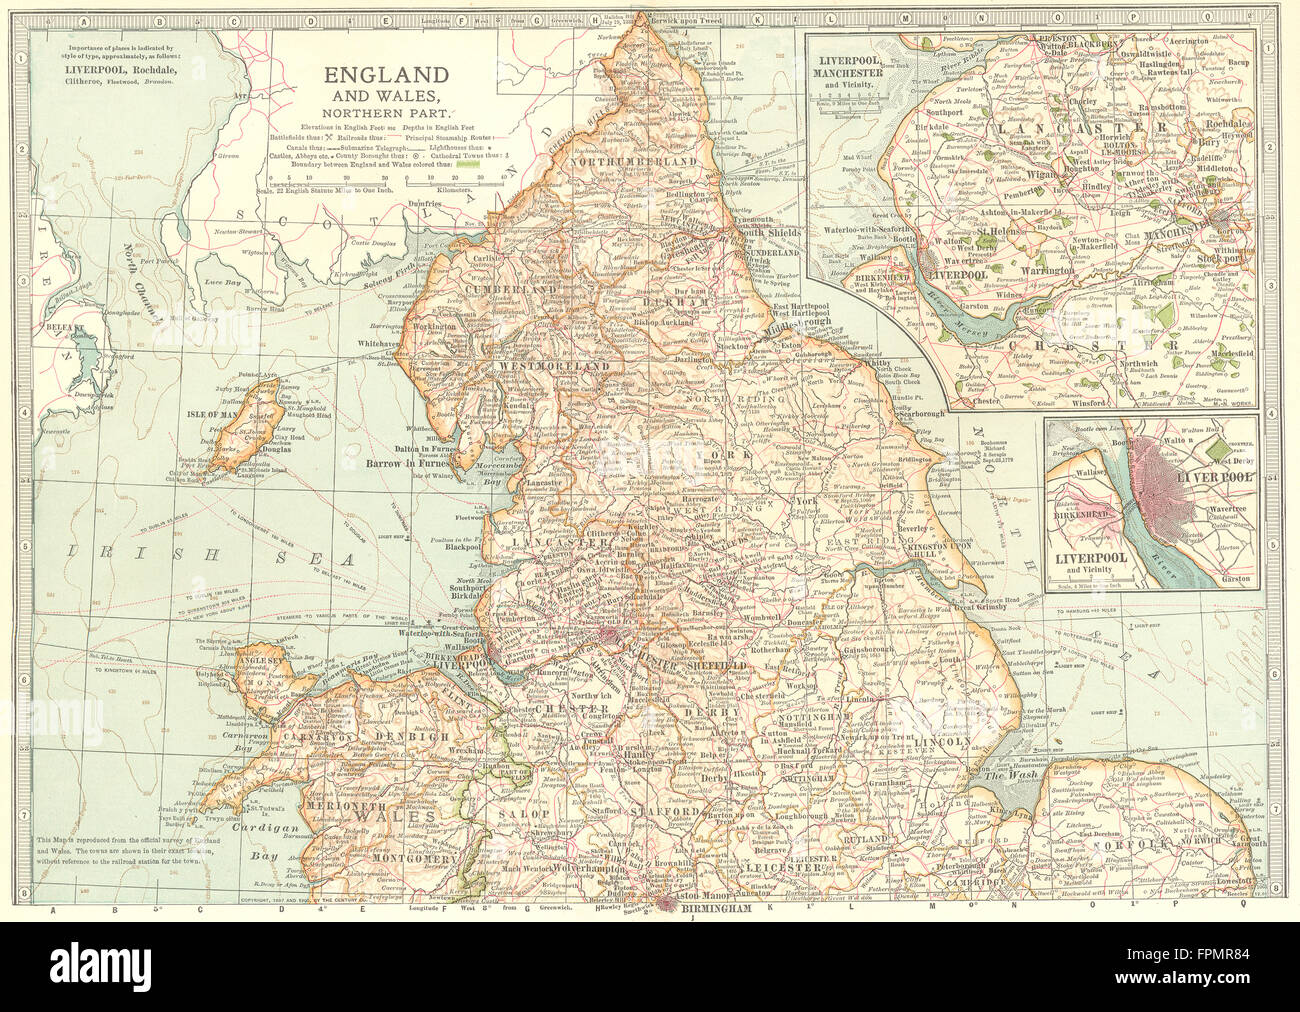 ENGLAND WALES N.Shows Civil War of the Roses Barons Wars battlefields 1903 map